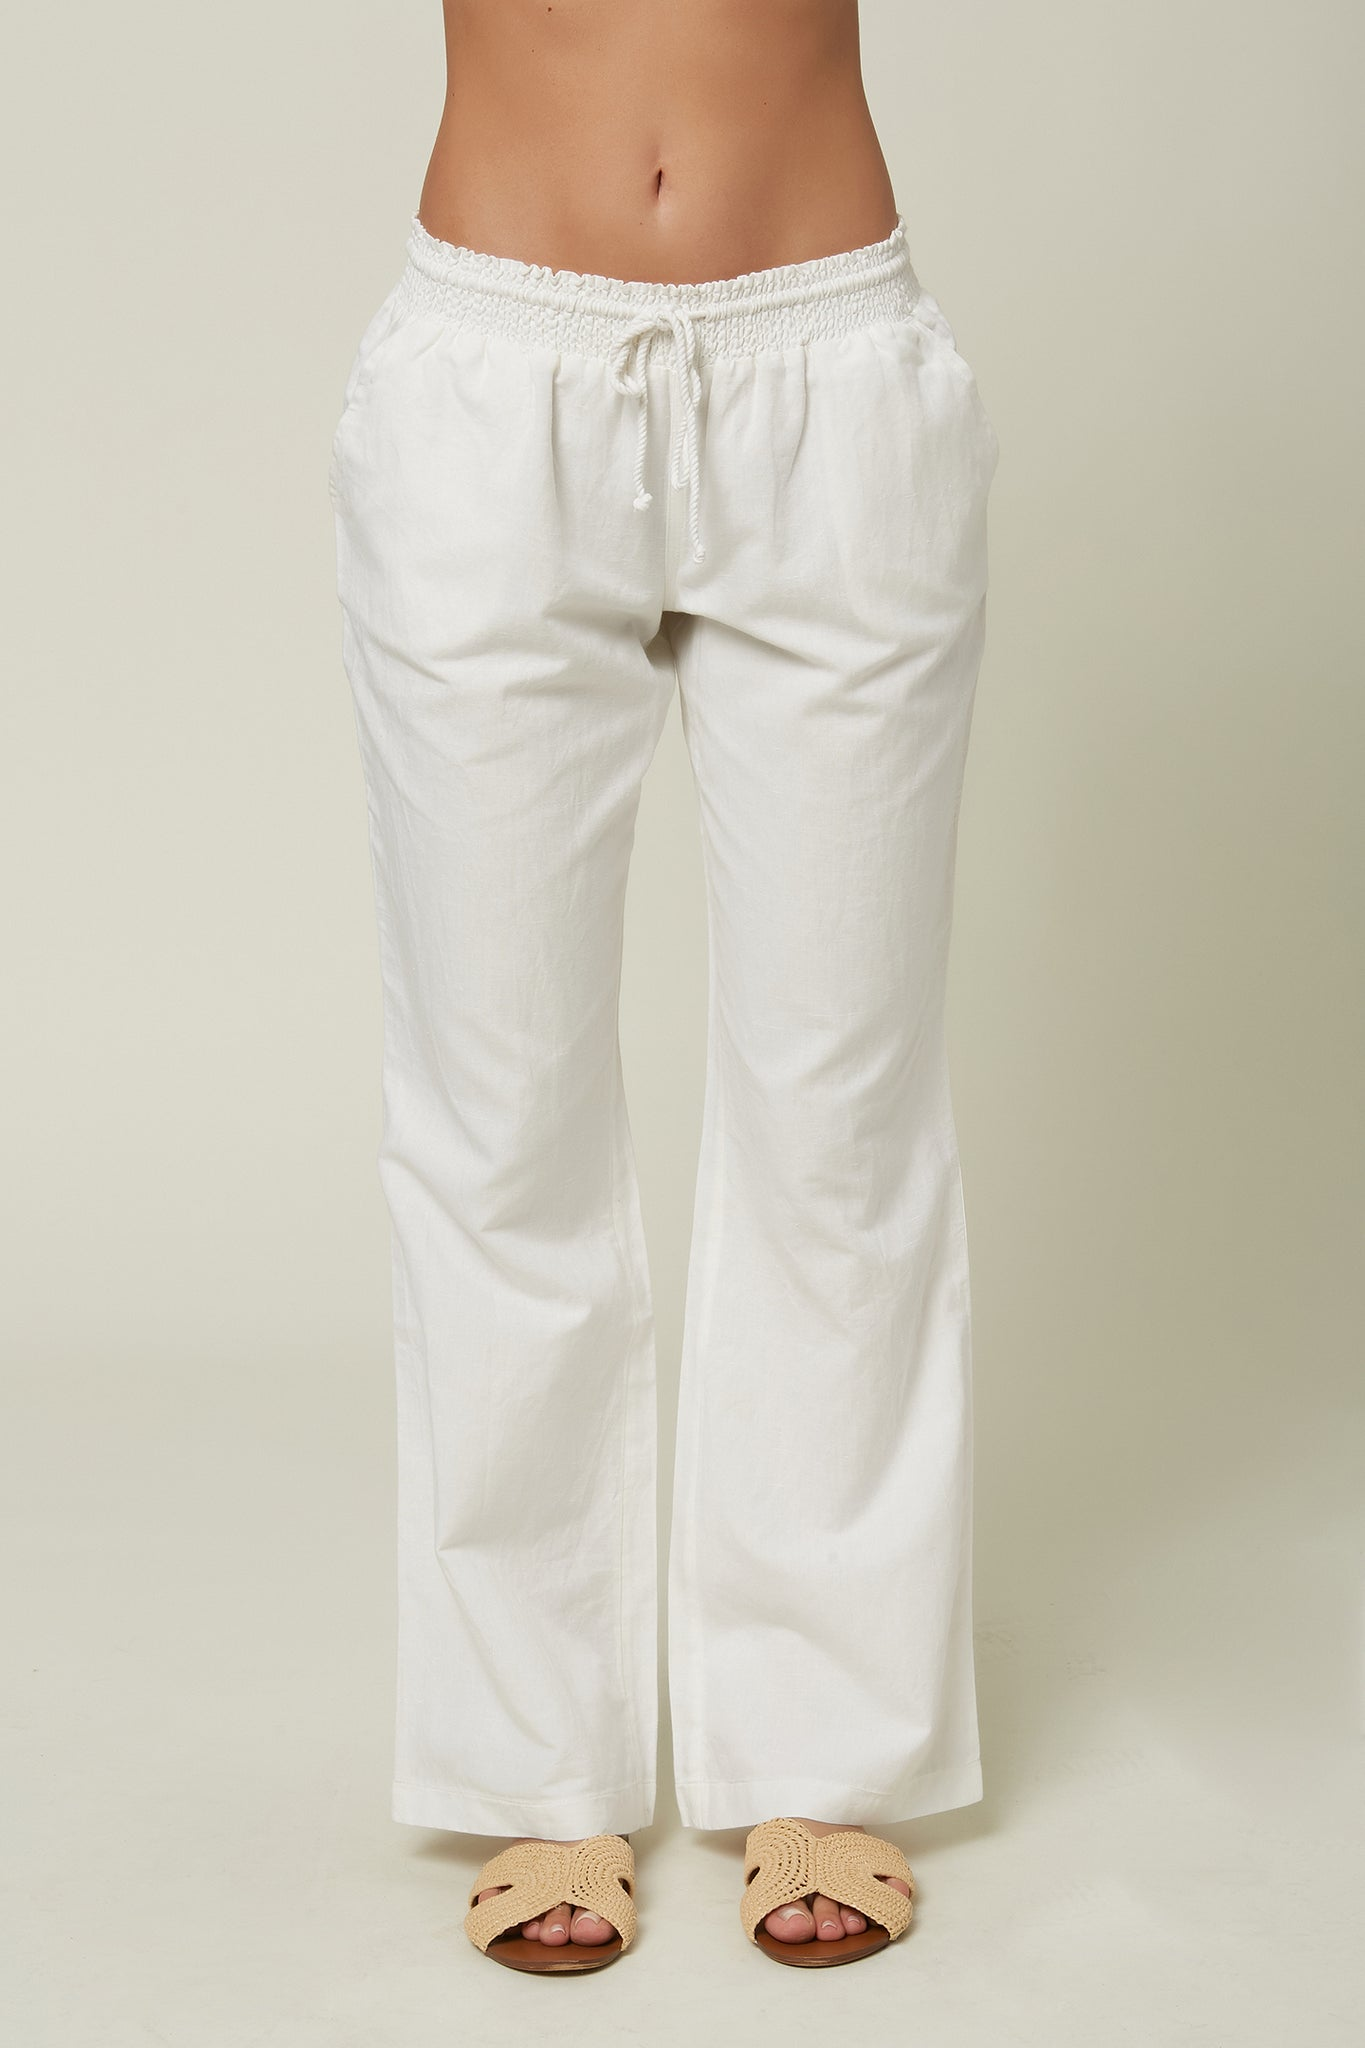 West Wave Beach Pants - Winter White | O'Neill